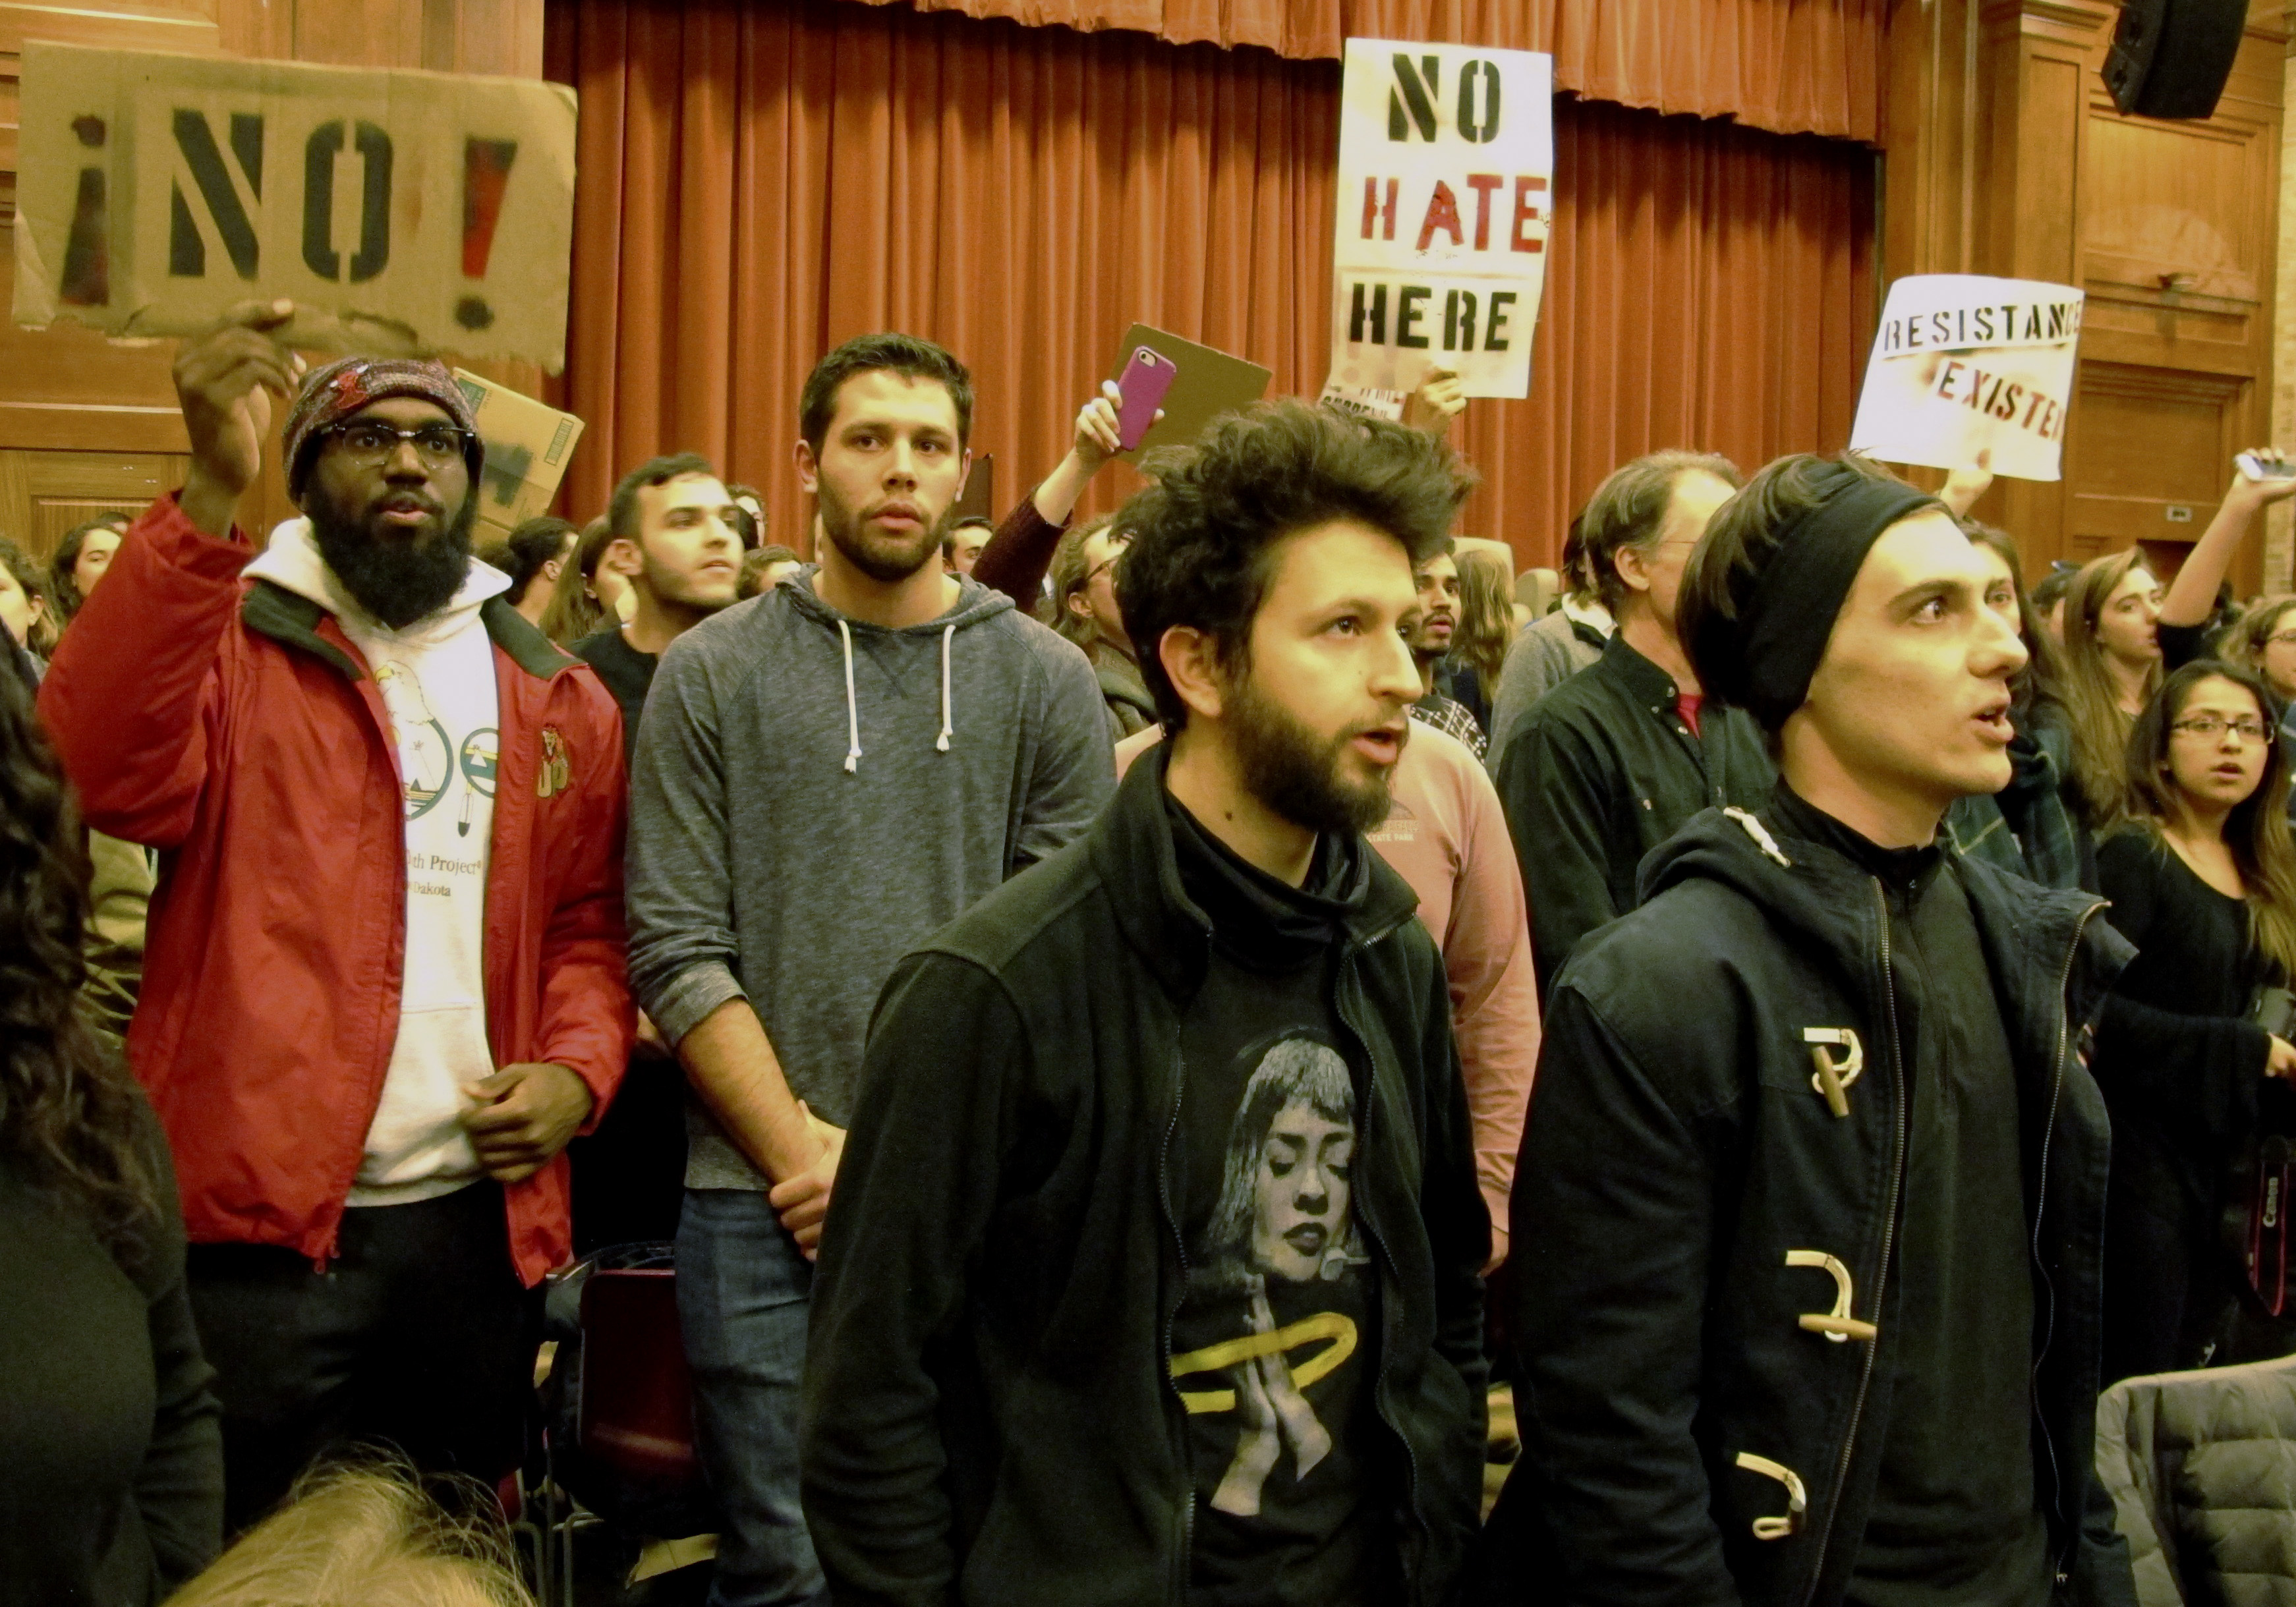 a violent attack on free speech at middlebury